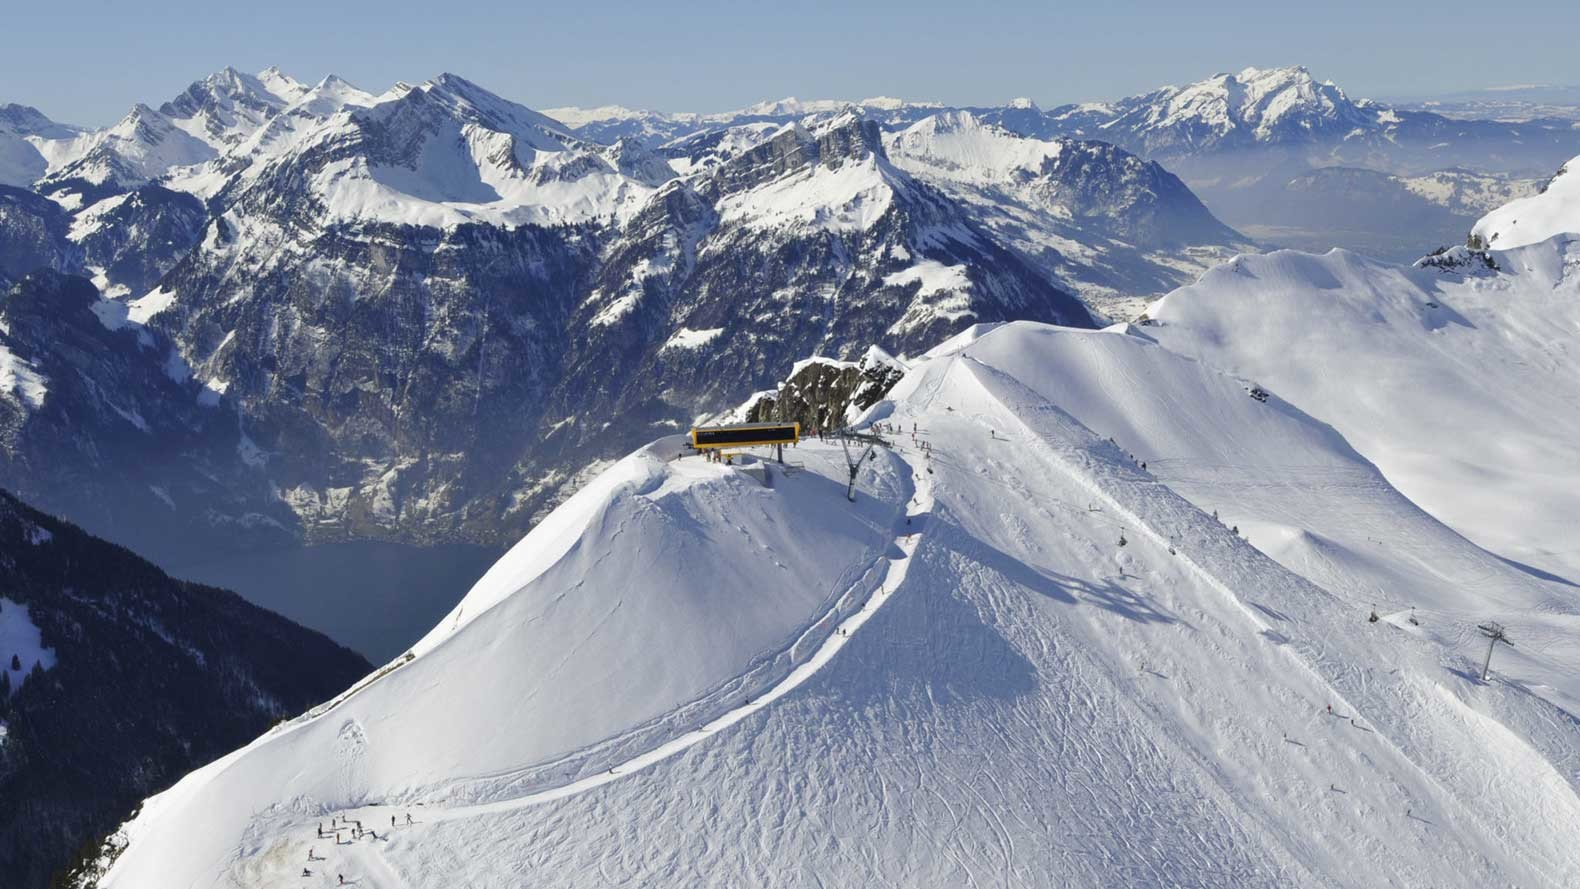 Switzerland to open world's steepest funicular railway